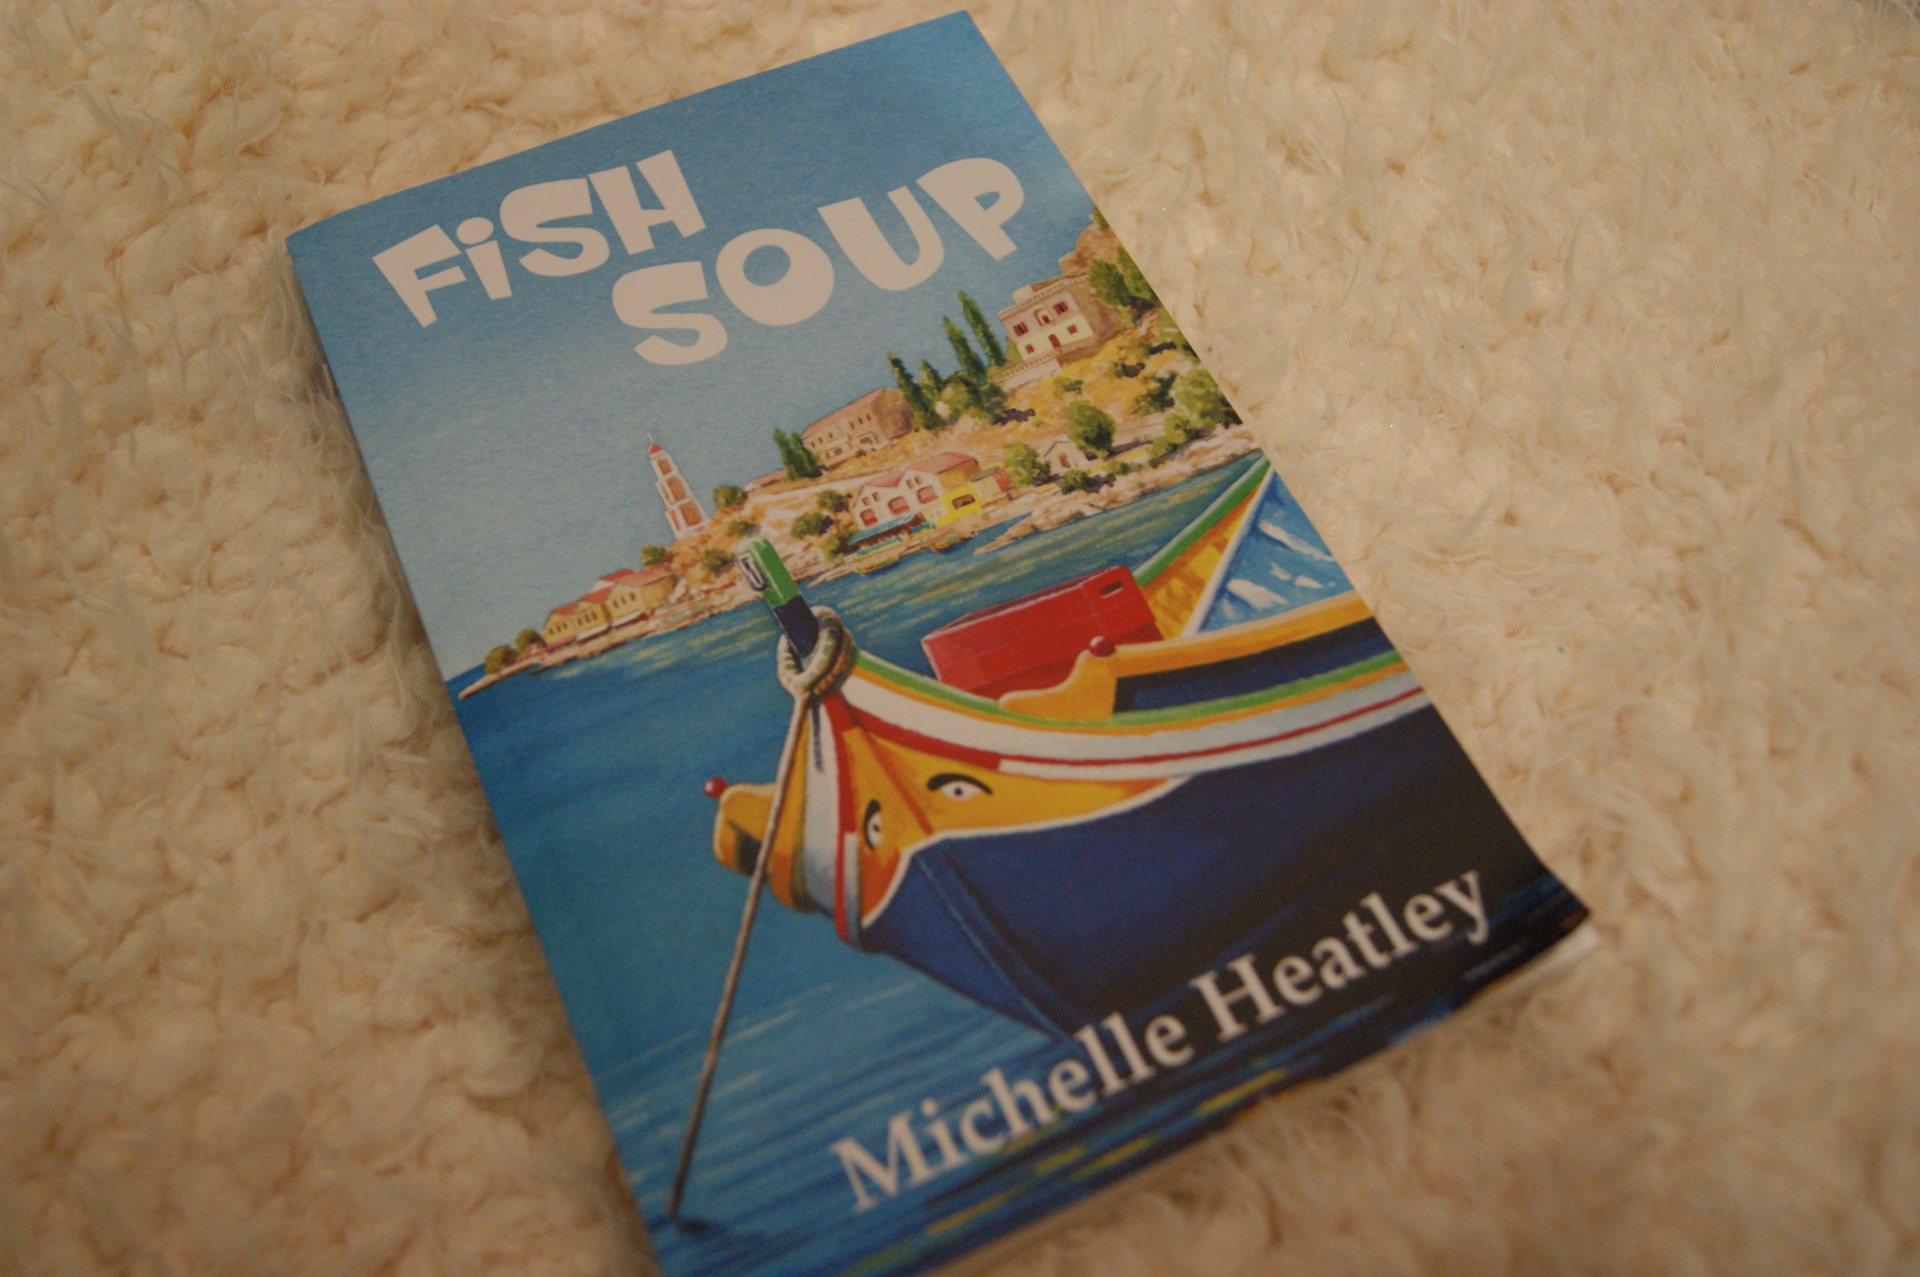 Fish Soup by Michelle Heatley